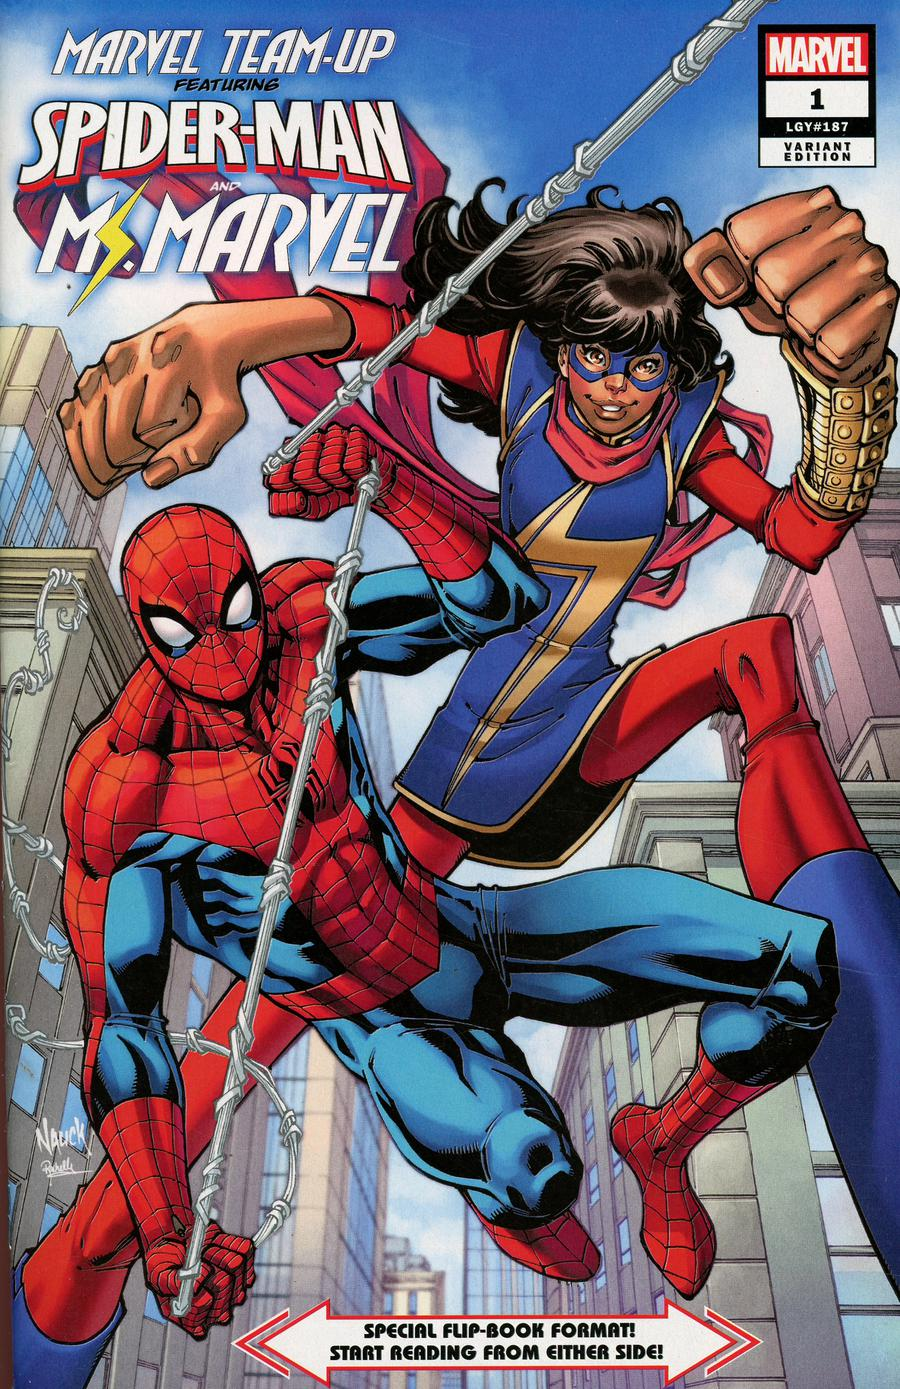 Marvel Team-Up Vol 4 #1 Cover B Incentive Todd Nauck Variant Cover